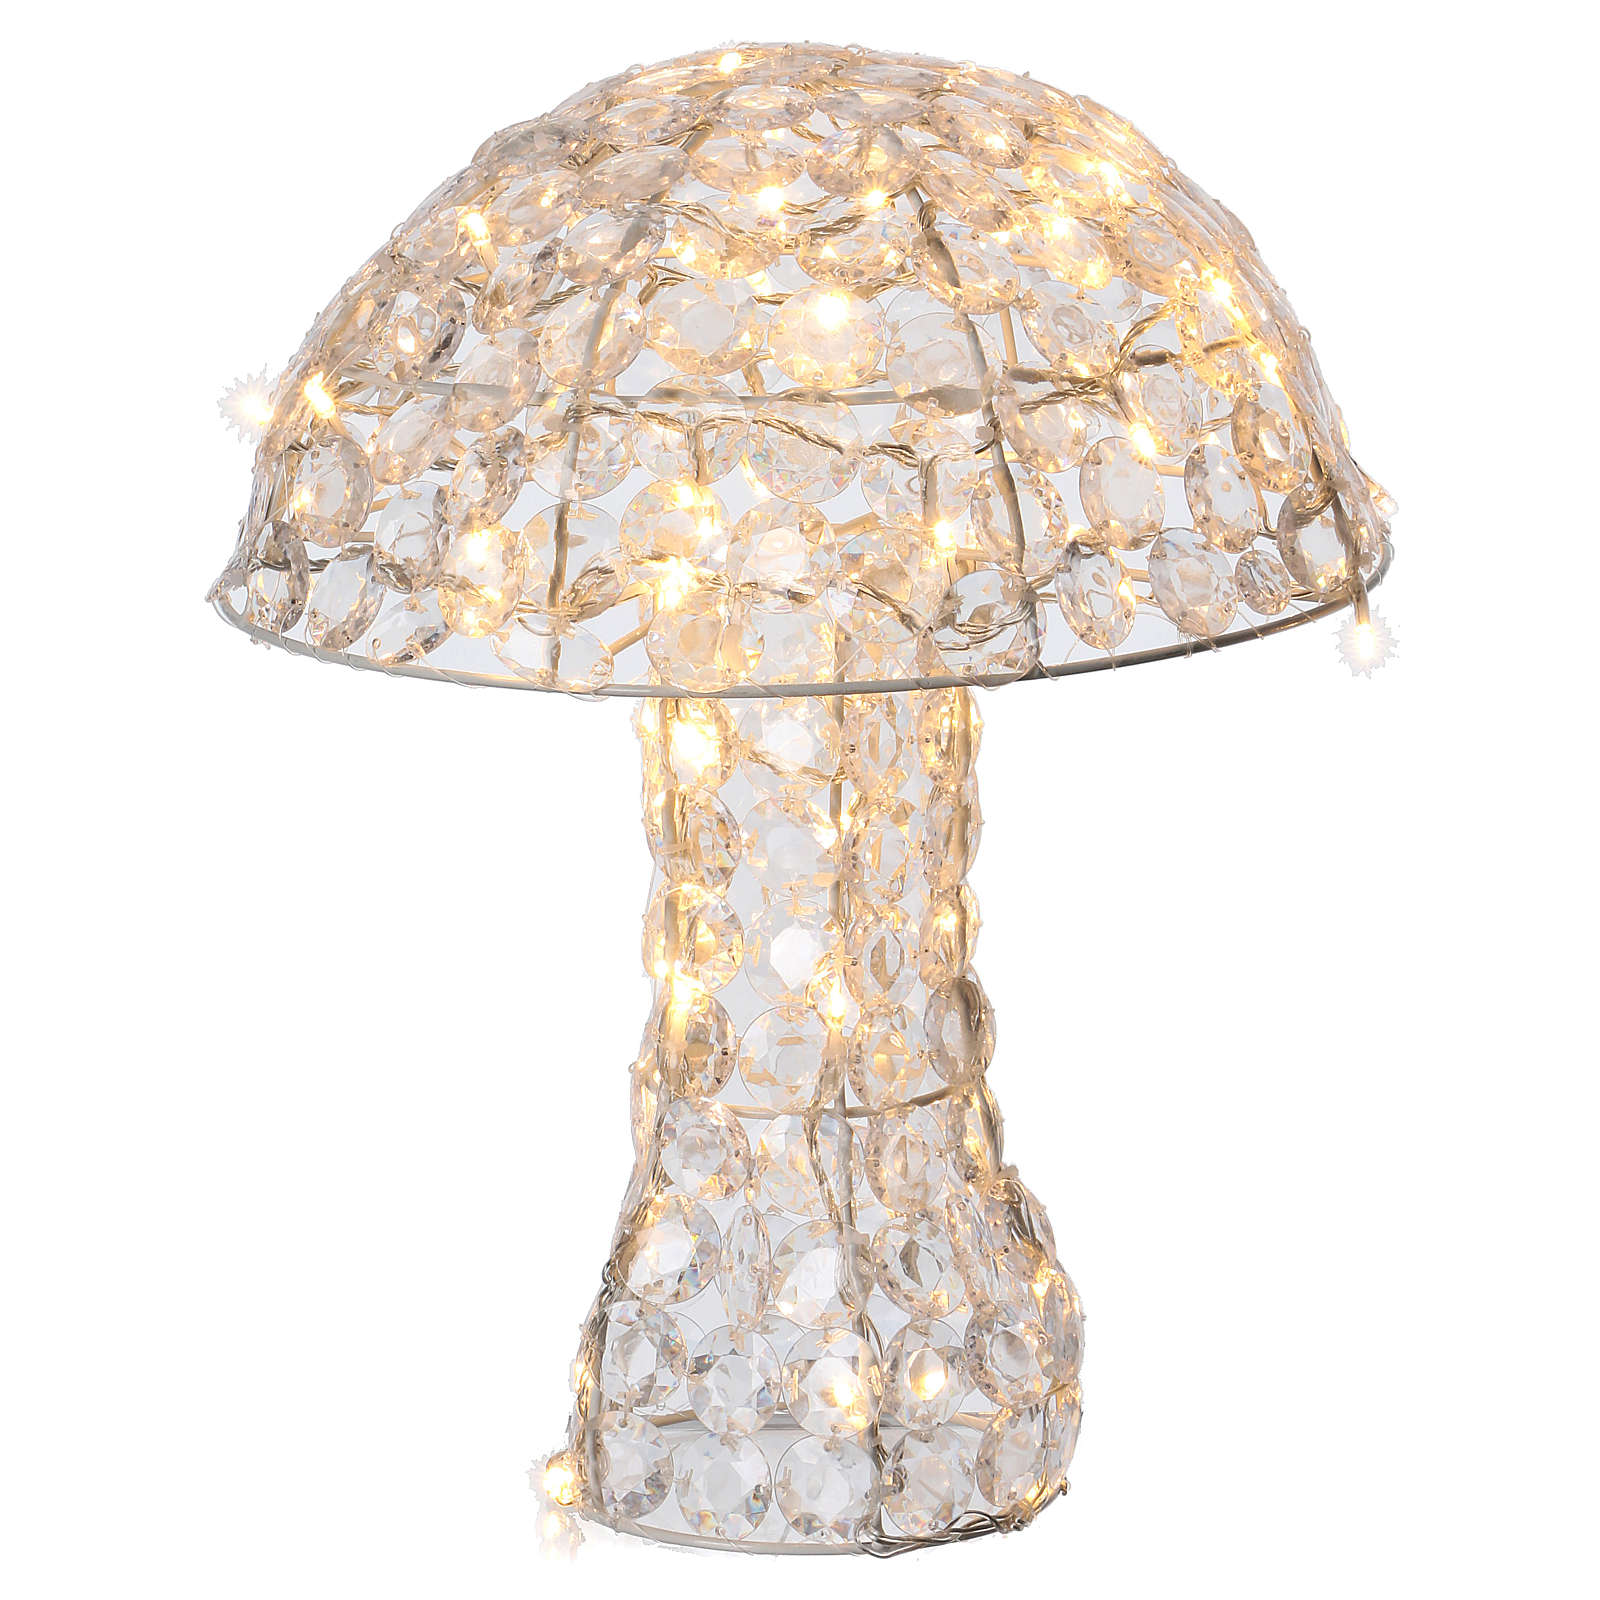 Mushroom Lighted with 95 LED in ice white diamond h 39 cm indoor and outdoor use 3